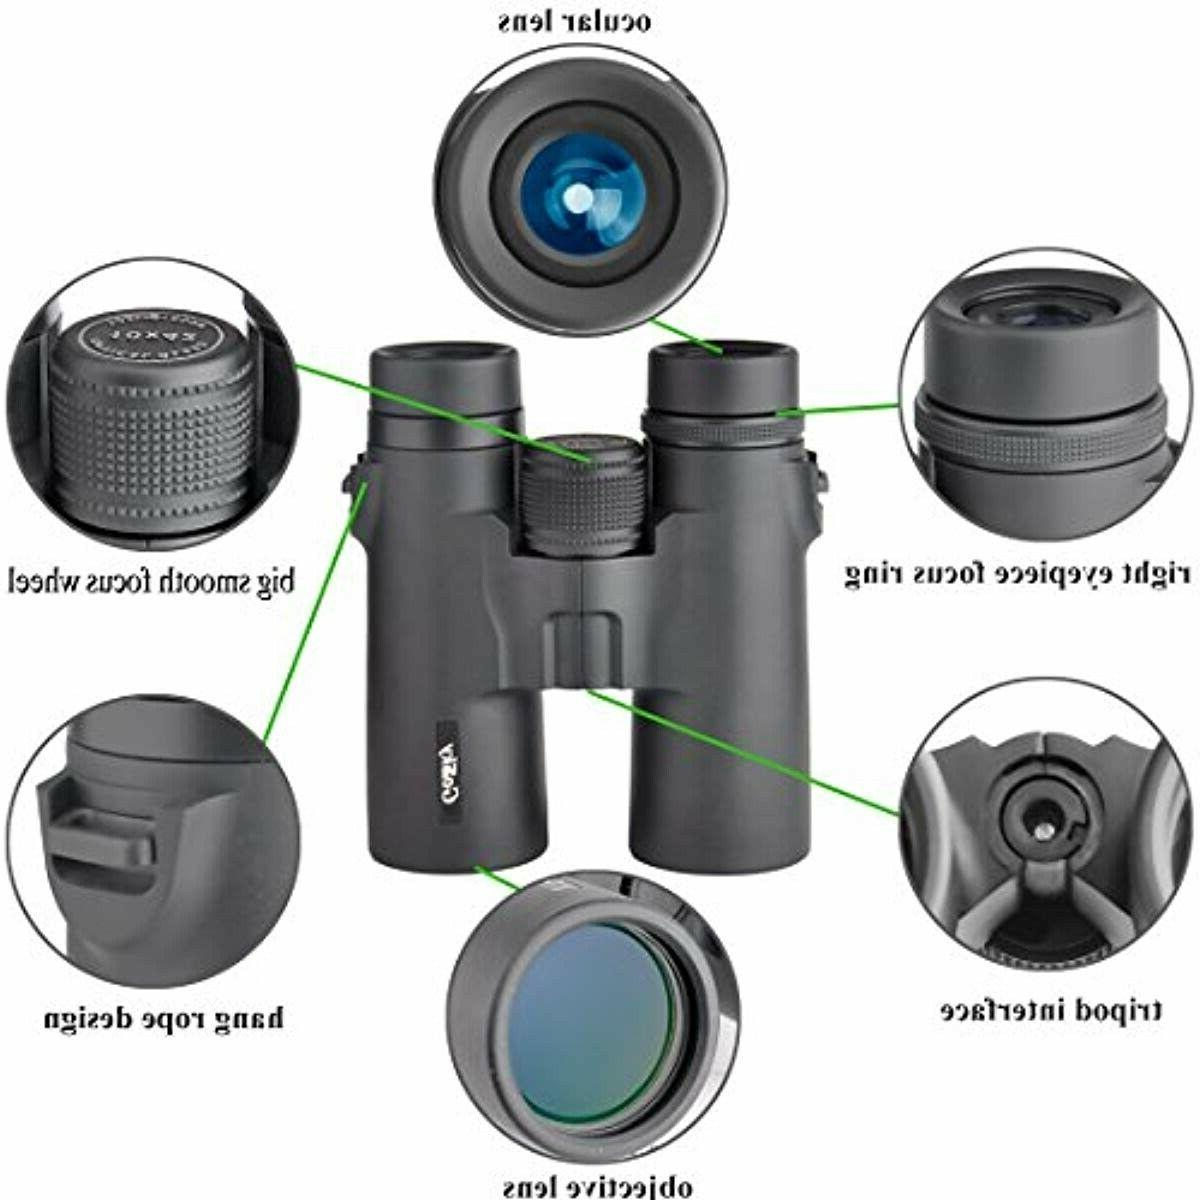 10x42 roof prism binoculars for adults hd